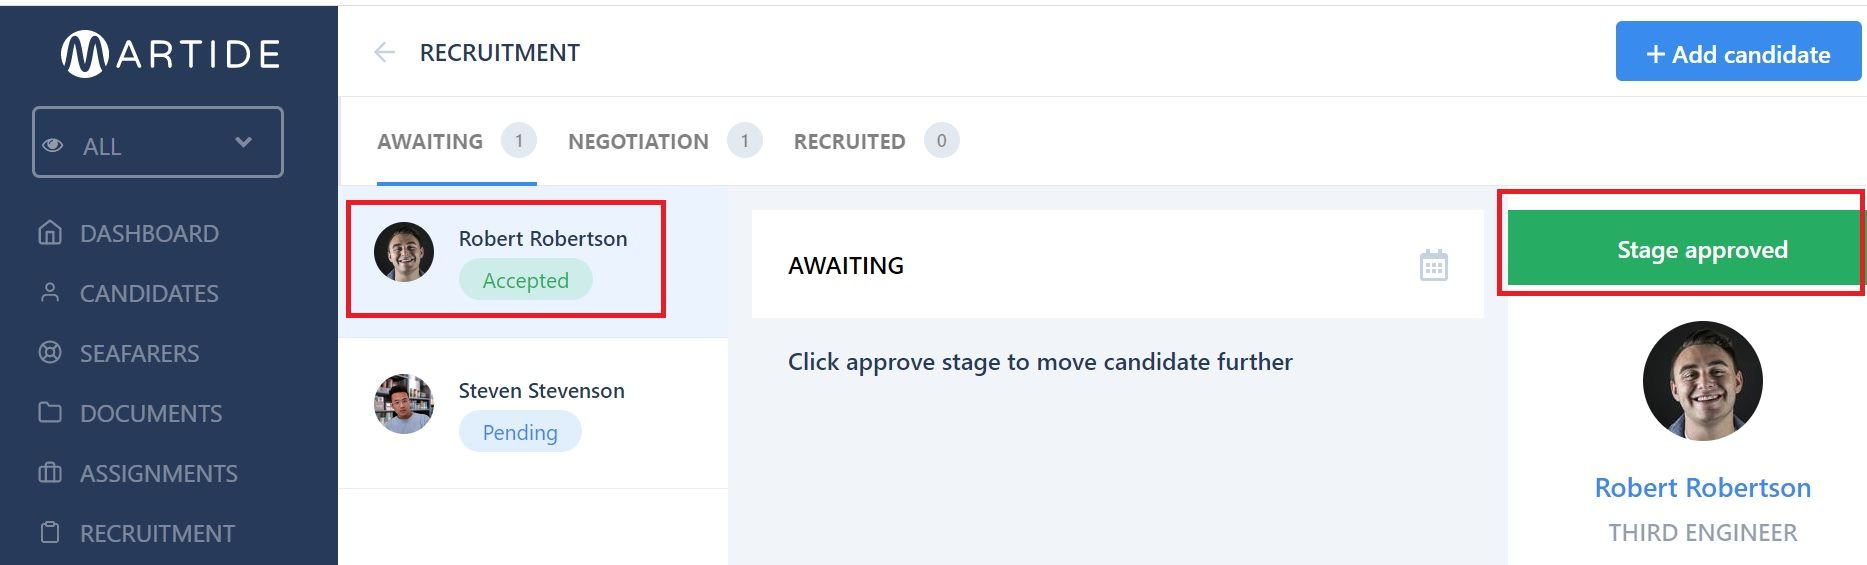 screenshot of candidates in the pipeline